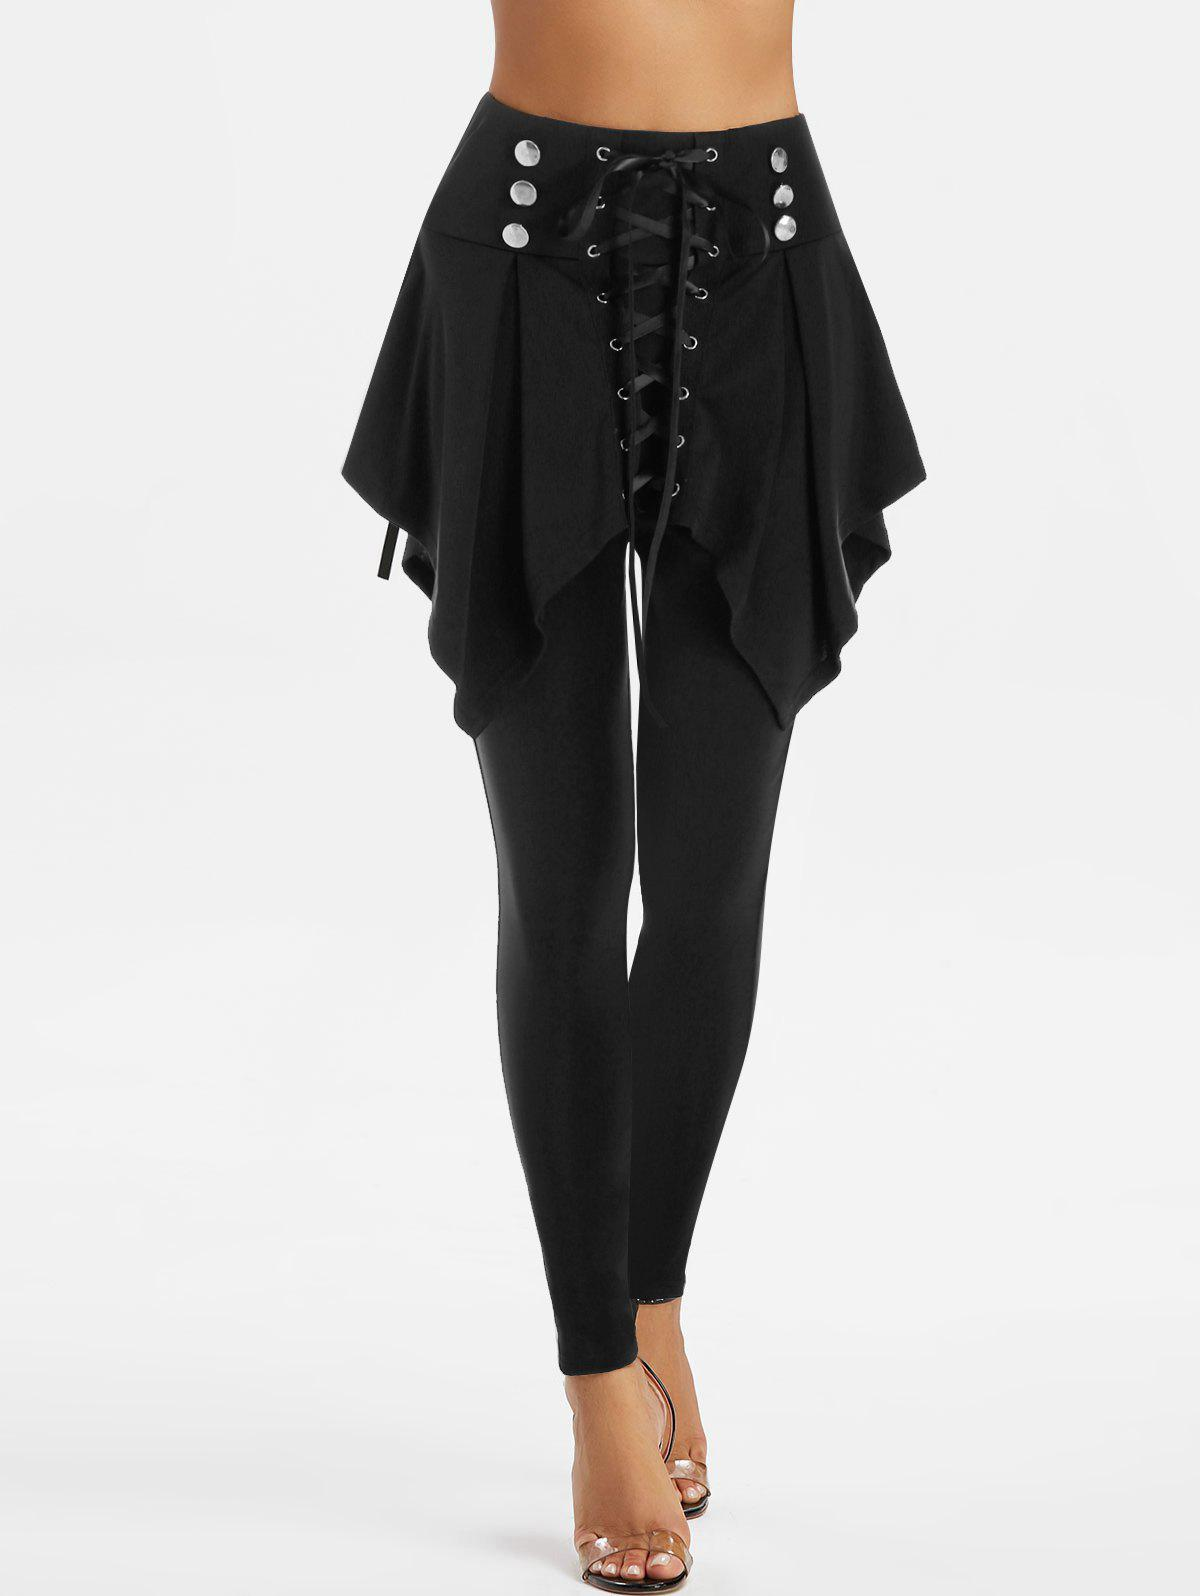 High Waisted Lace-up Front Skirted Pants - BLACK L